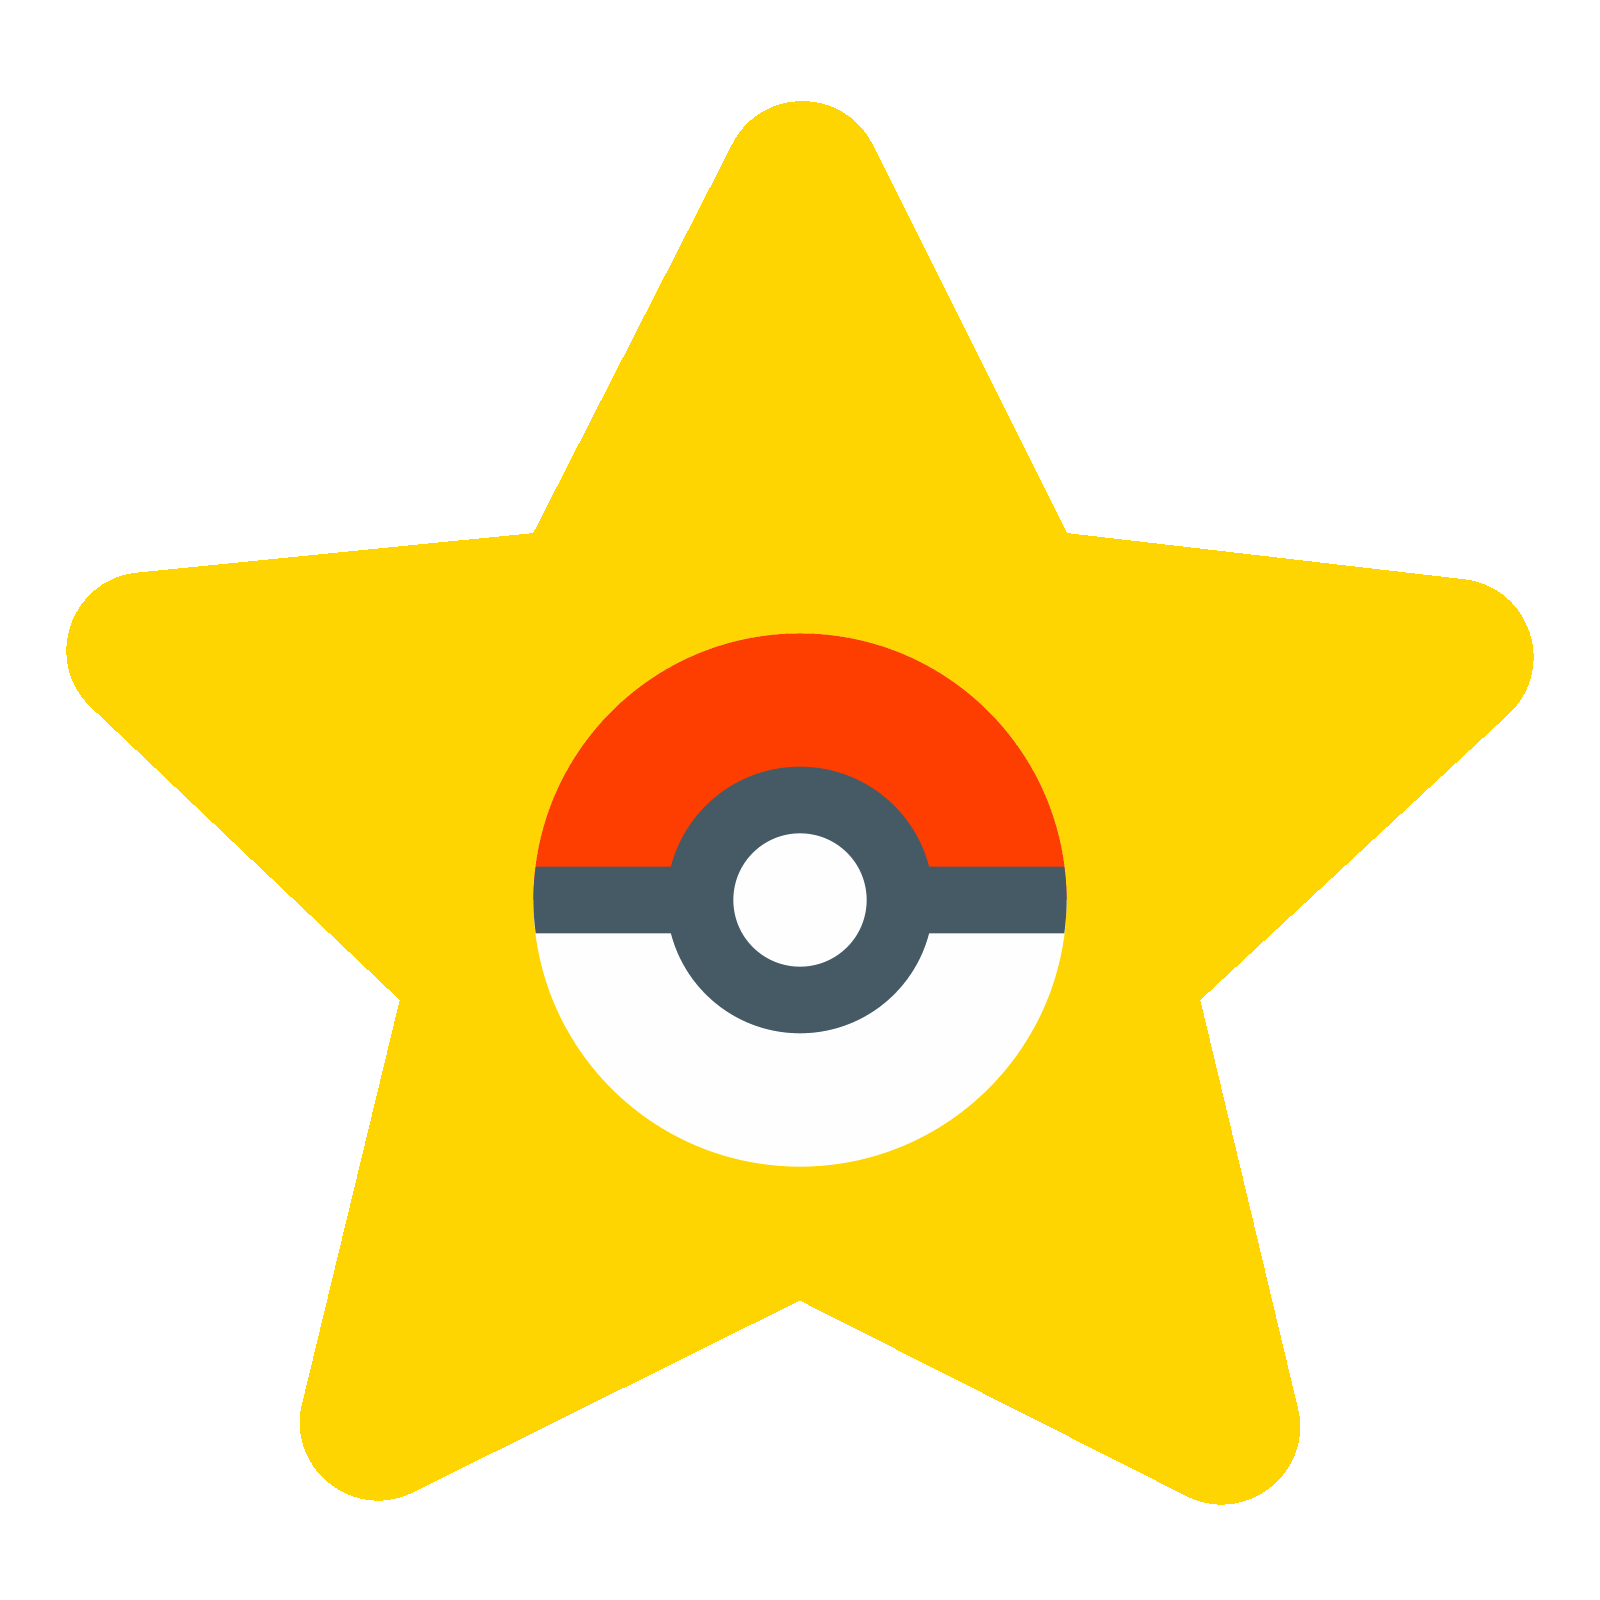 Vector star png. Pokemon icon free download